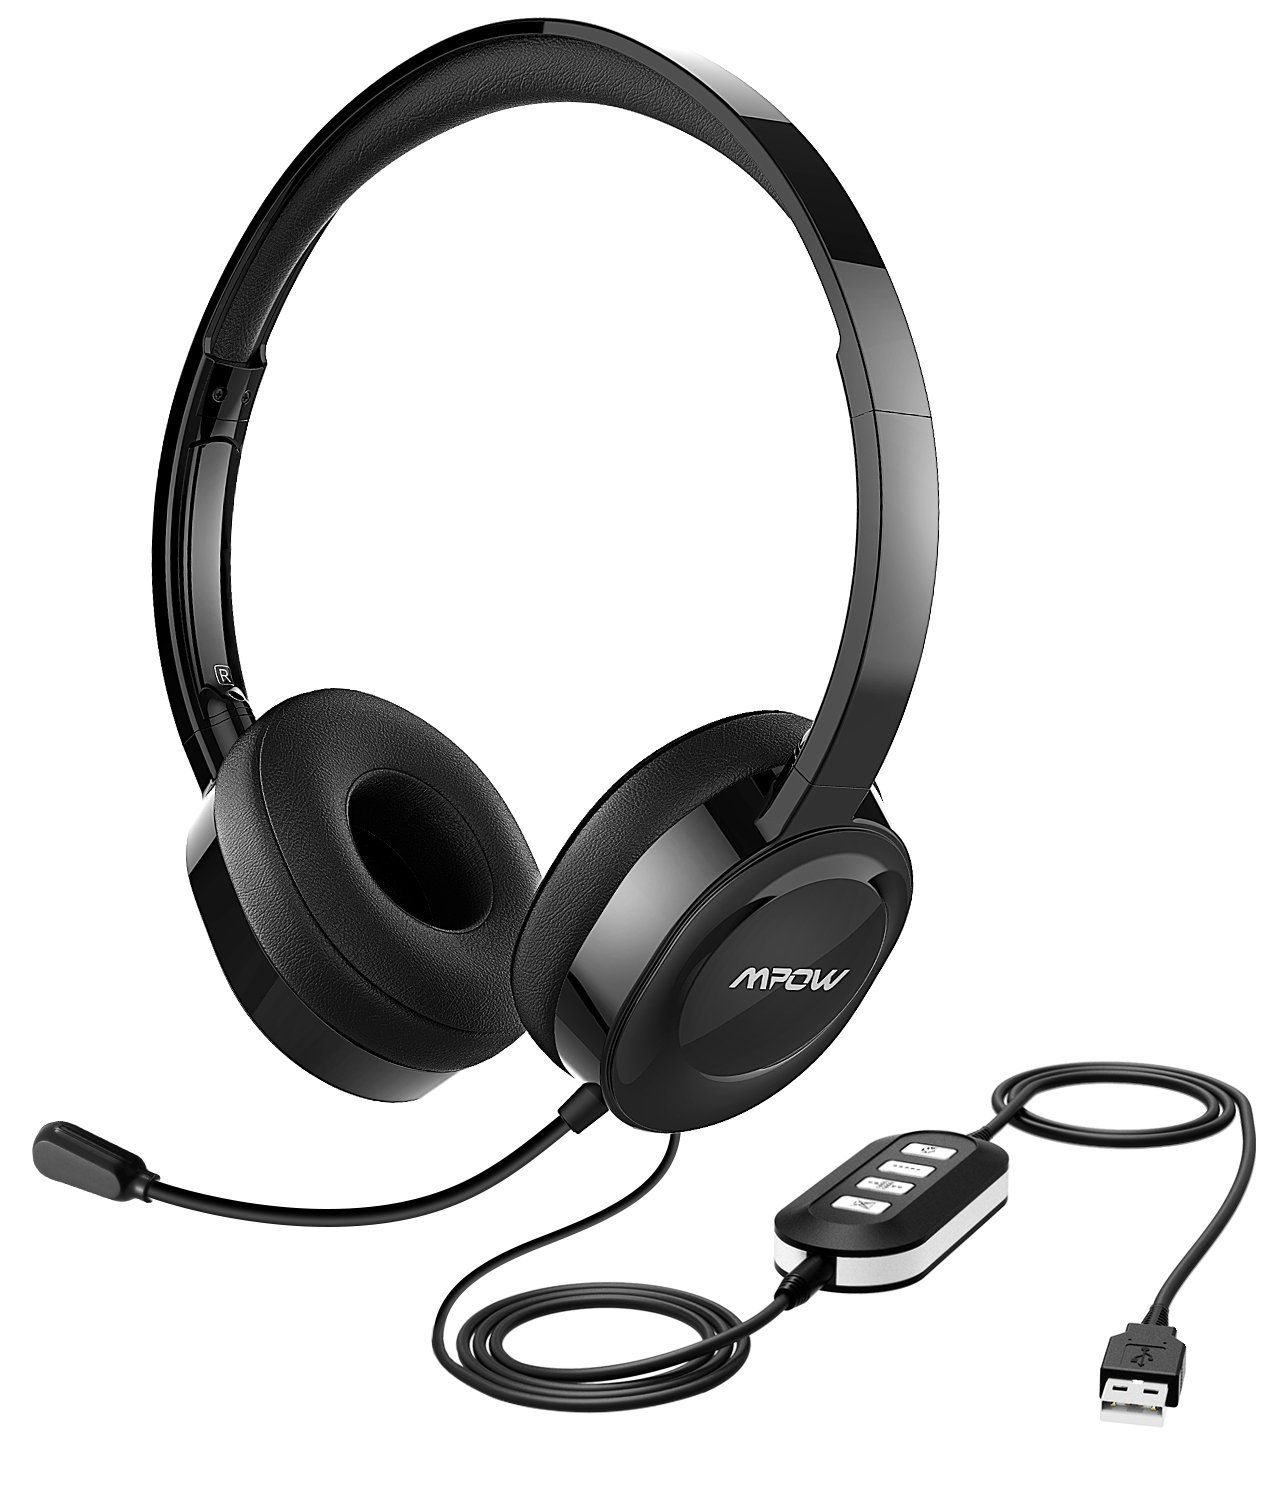 Mpow 158 USB Headset/ 3.5mm Computer Headset, Soft Memory-Protein Earmuffs, Noise Cancelling Headset with Microphone, Lightweight On-Ear Headphones, Wide Compatibility for PC,Cell Phone,Tablet